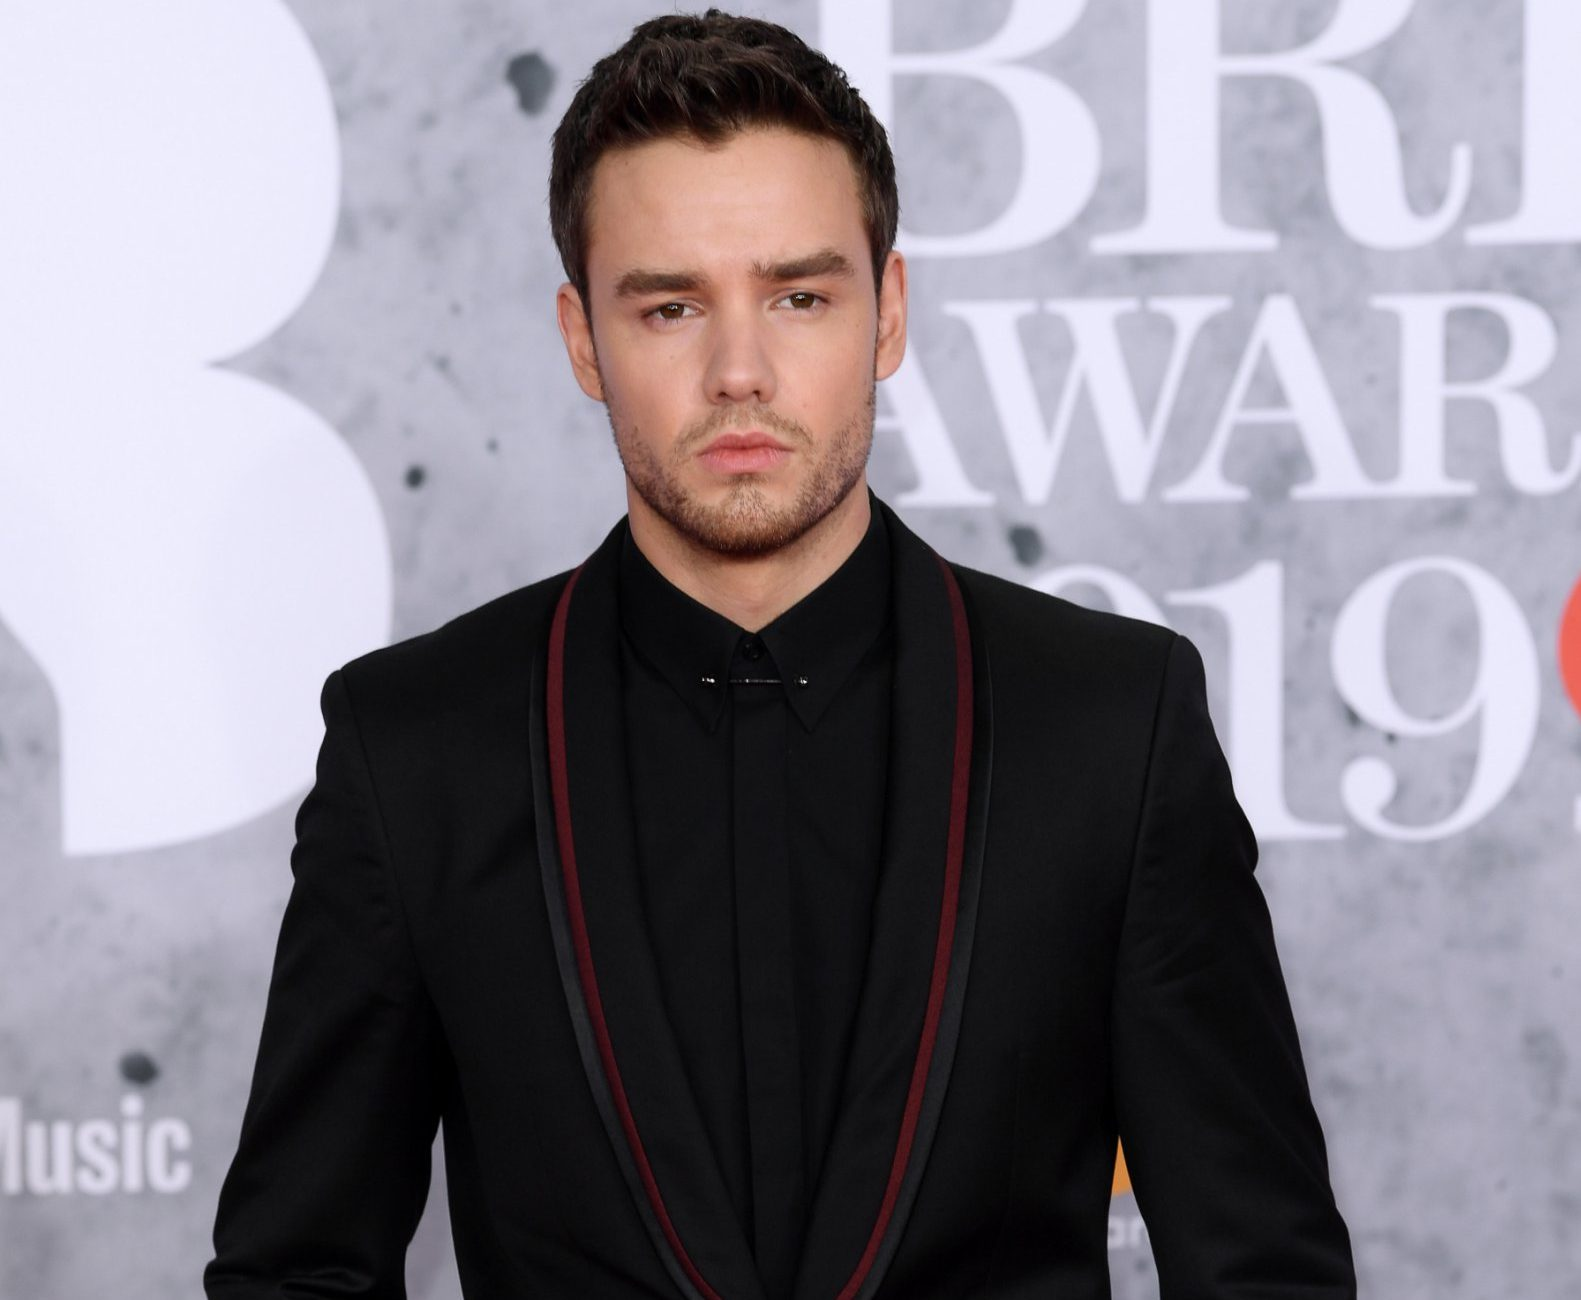 Liam Payne snaps at fan over One Direction reunion: 'I get asked this ridiculous question 500x a day'